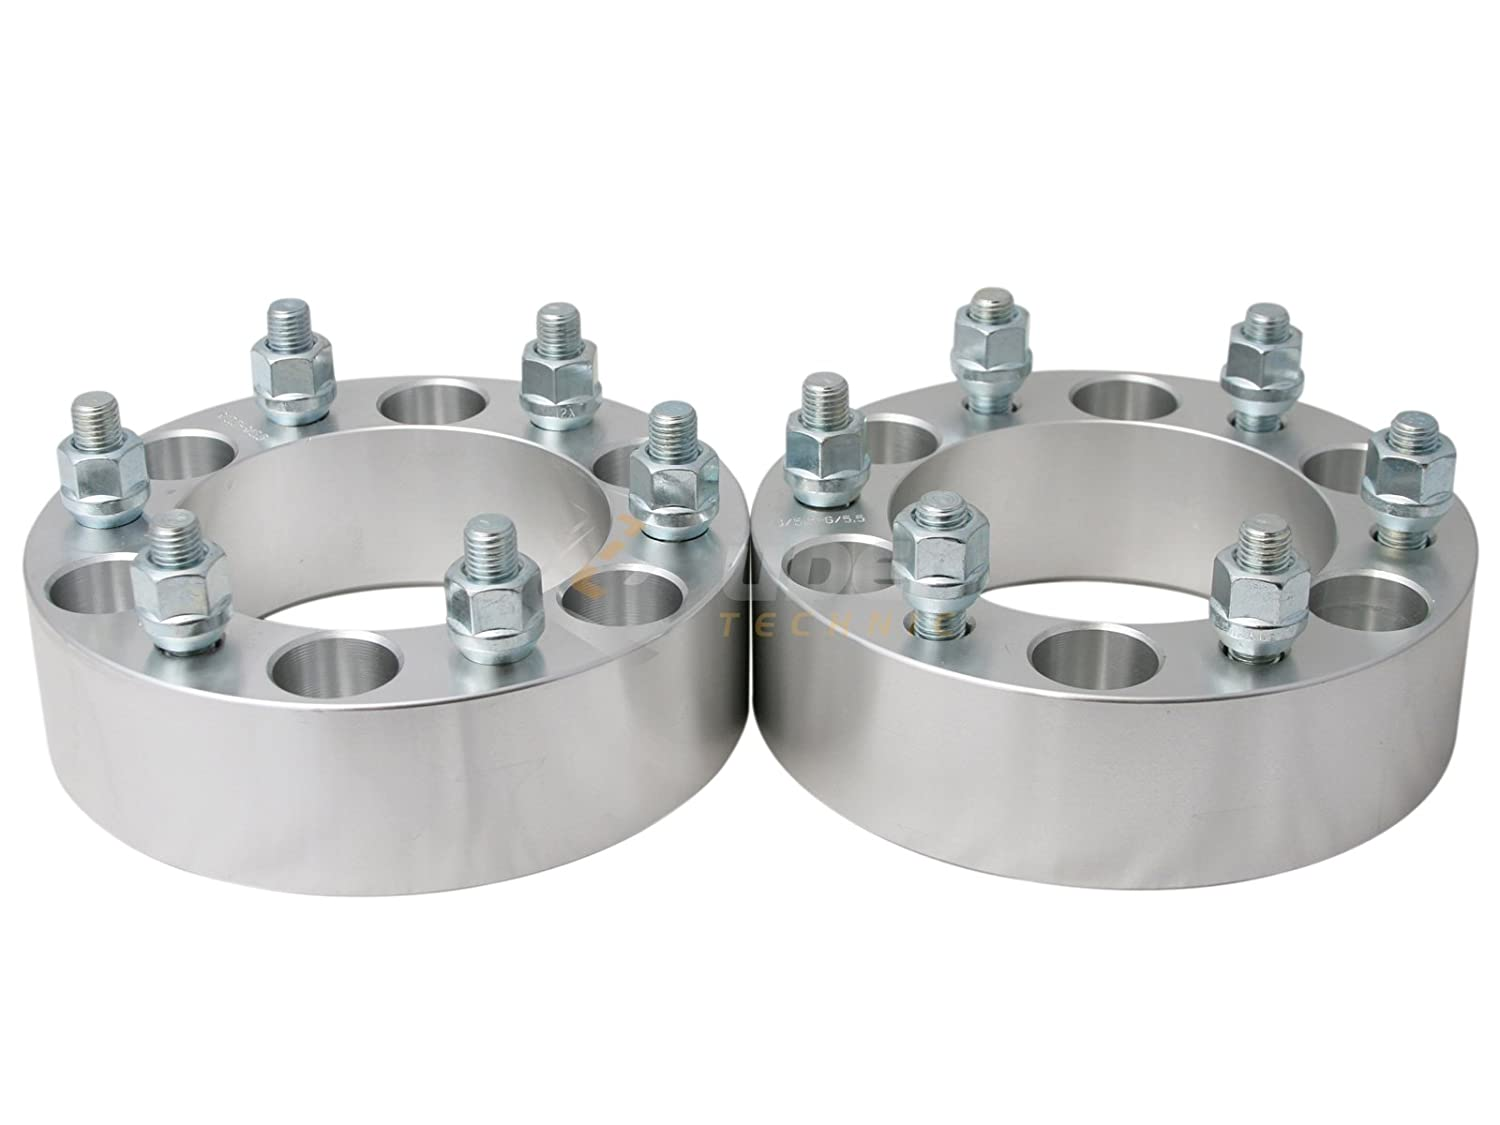 108mm bore, 12x1.5 studs 2 6x5.5 to 6x5.5 Wheel Spacers Pack of 2 Compatible with Chevy Colorado GMC Canyon Honda Passport Hummer H3 H3T Lexus GX470 Toyota Tacoma Tundra UberTechnic 6x139.7